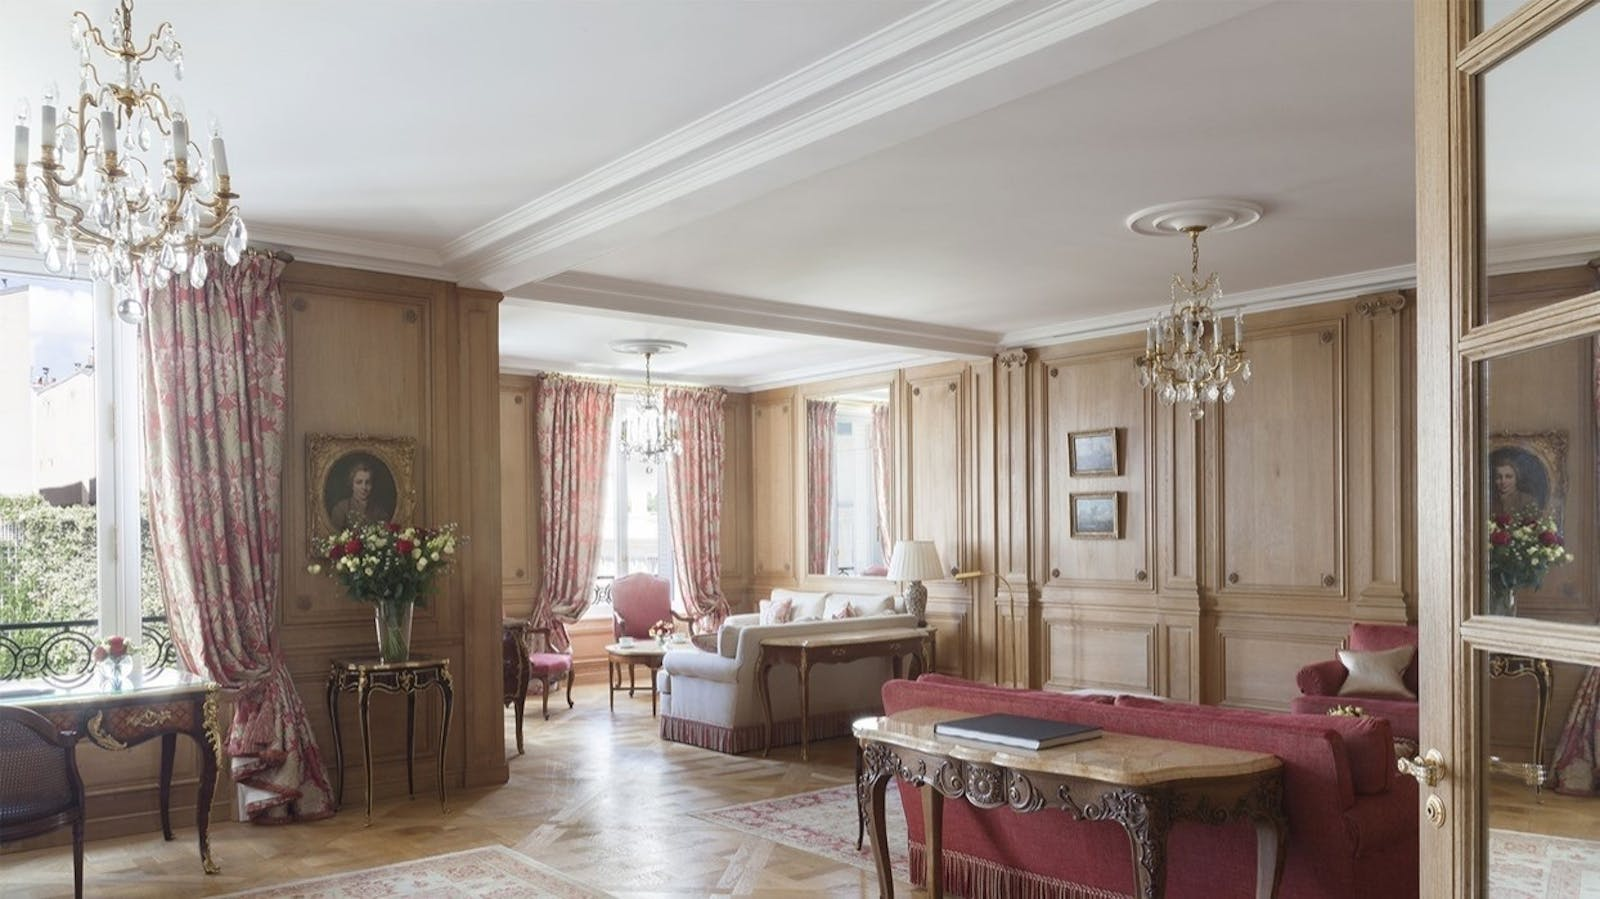 Royal Suite at Le Bristol, Paris, France